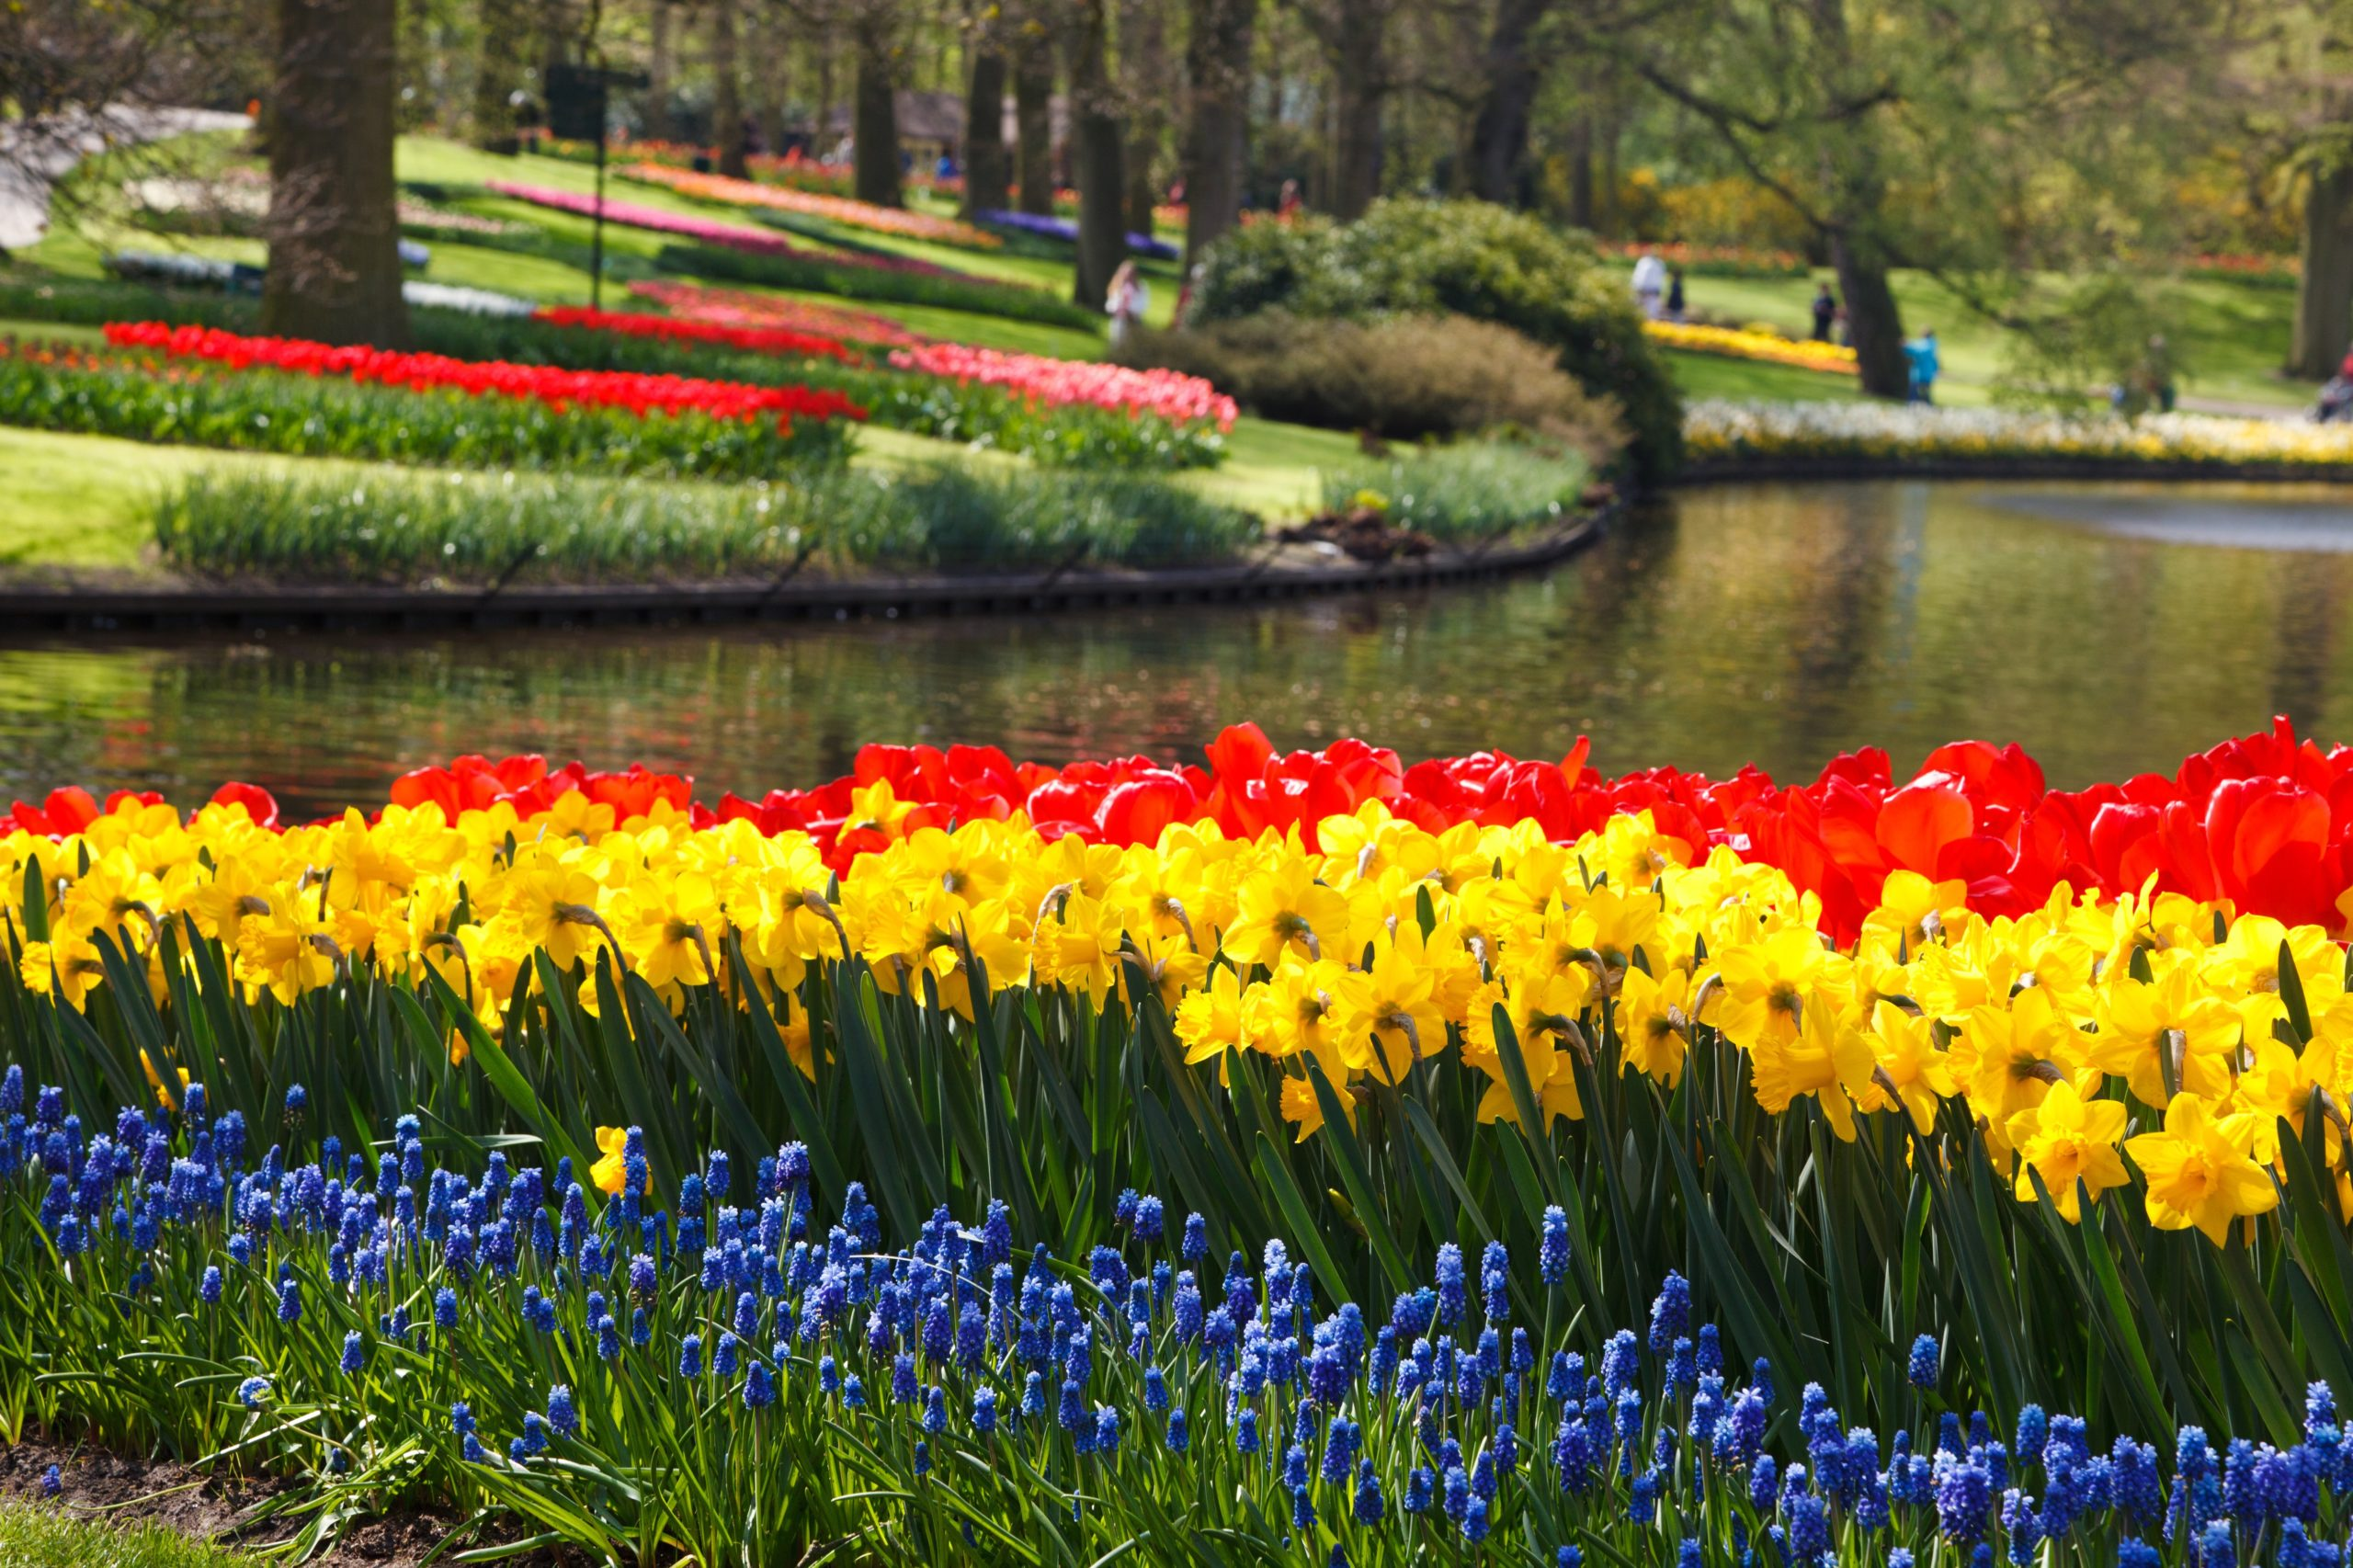 colorful flowers in a large garden